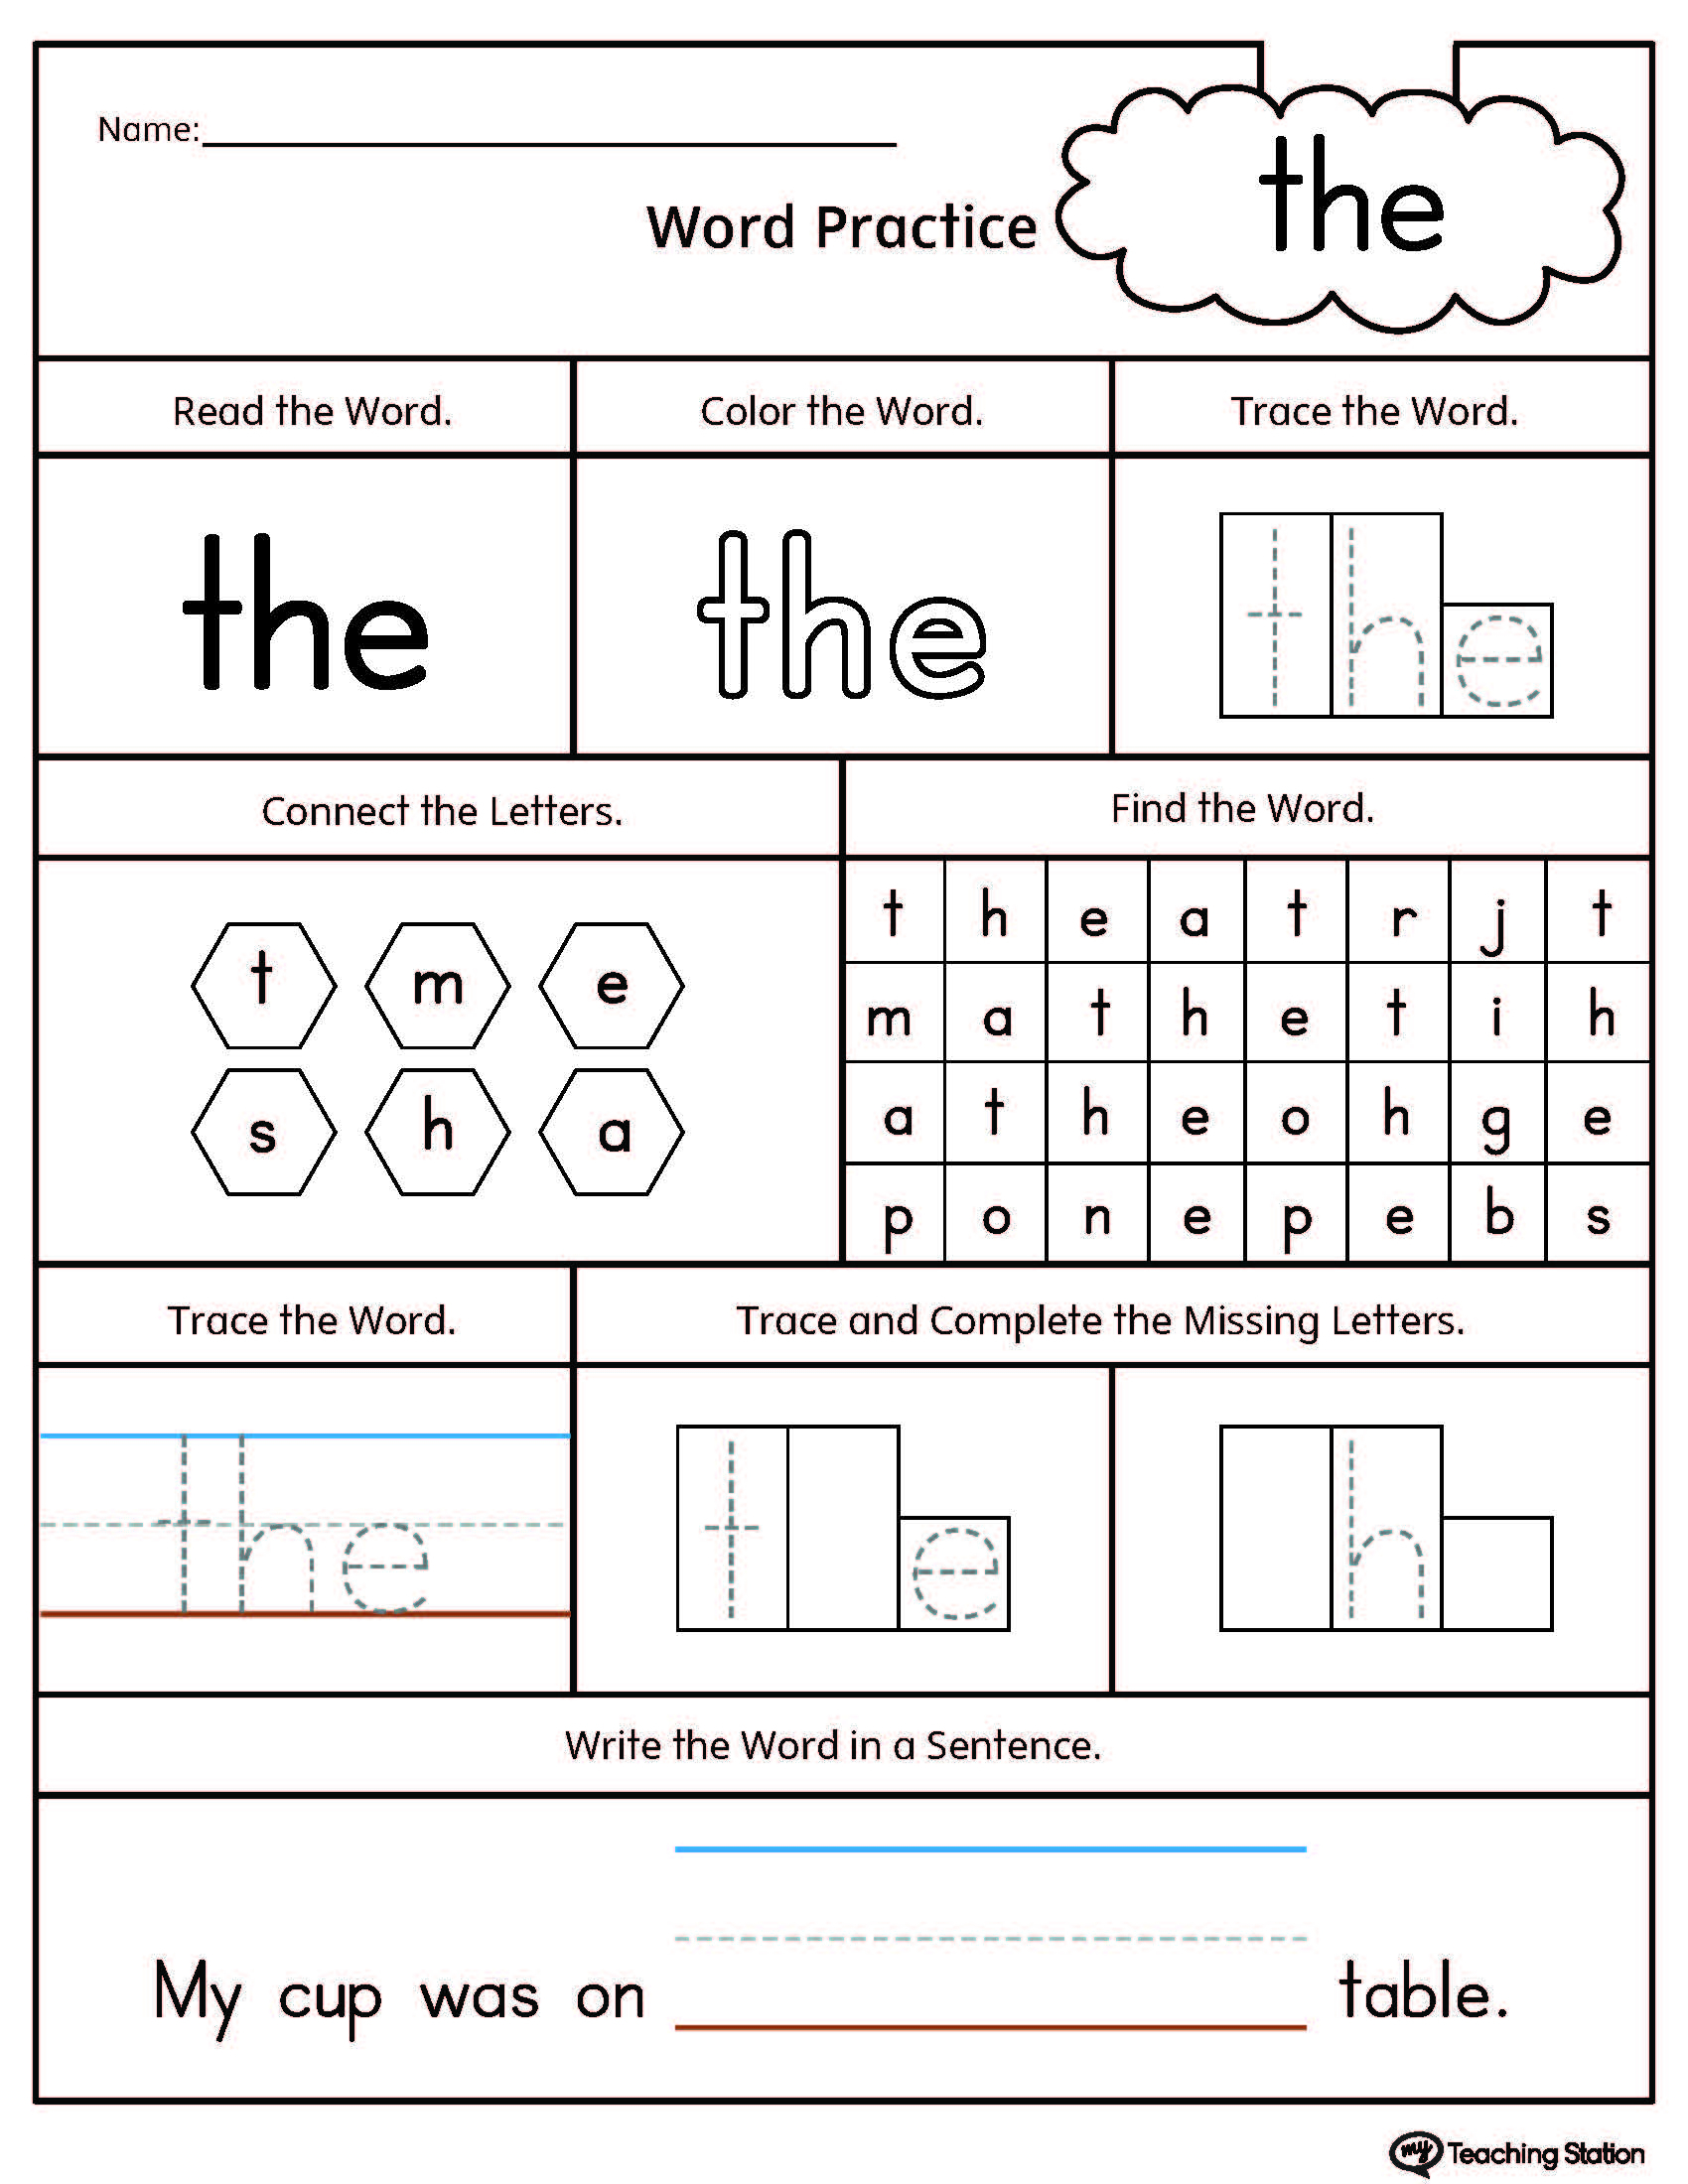 Sight Word The Printable Worksheet | Myteachingstation | Printable Sight Word Worksheets